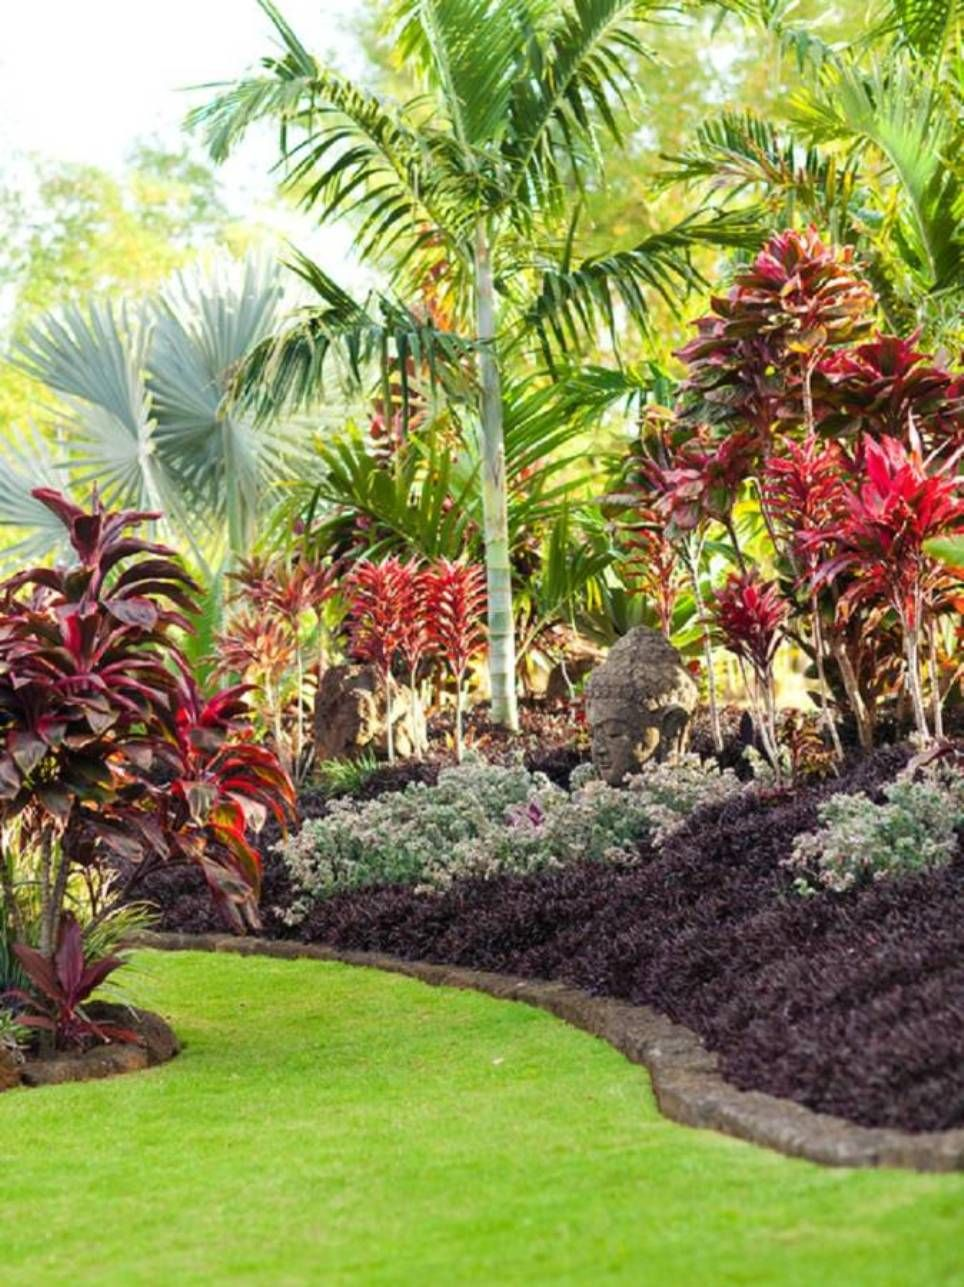 Etonnant Garden And Lawn , Soothing Asian Garden Design : Tropical Asian Garden  Design